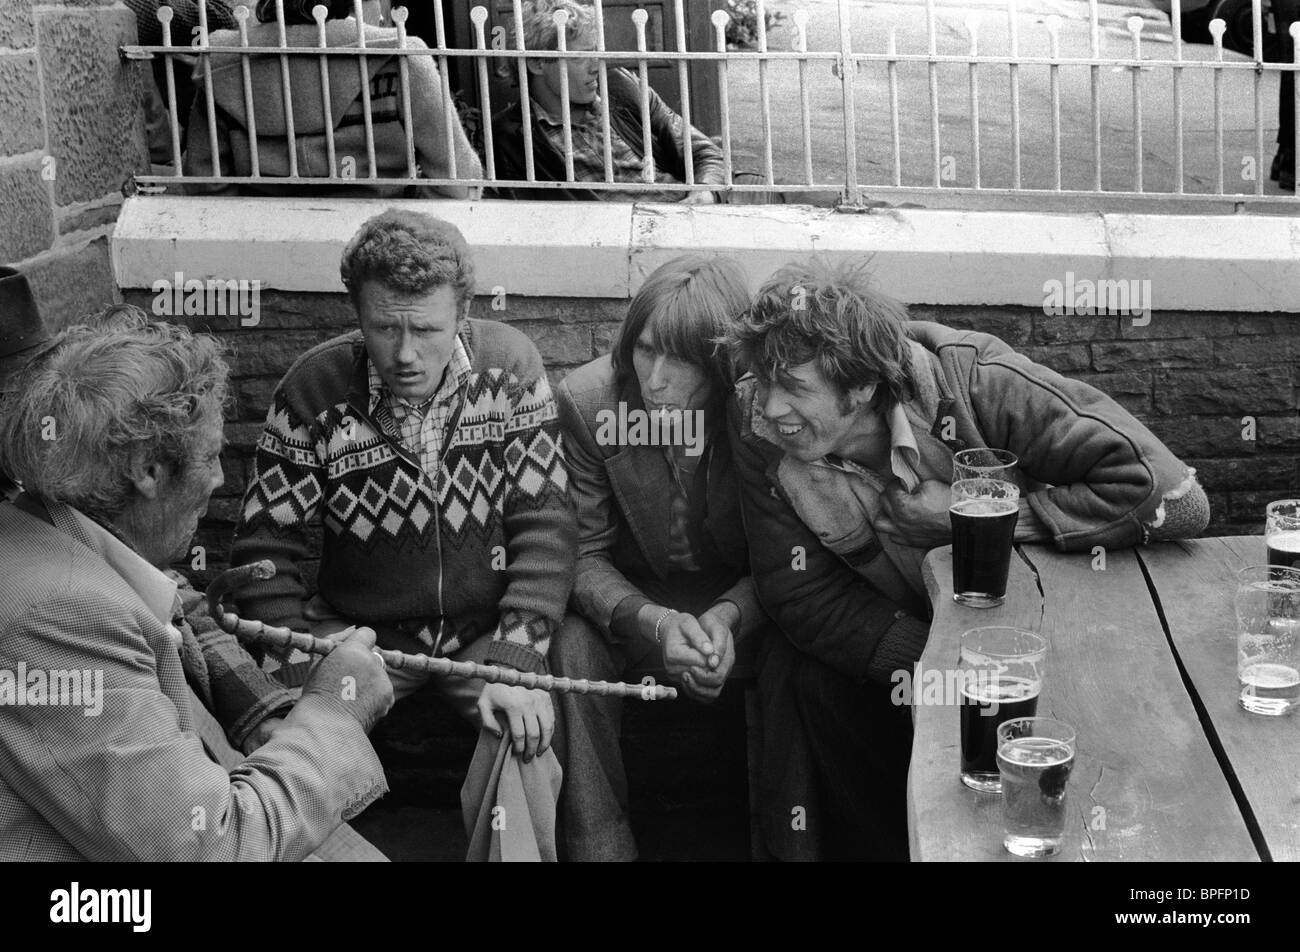 Older gypsy man telling tall story to three younger gypsies . Appleby Gypsy Fair 1981. man talking in pub at Appleby. - Stock Image